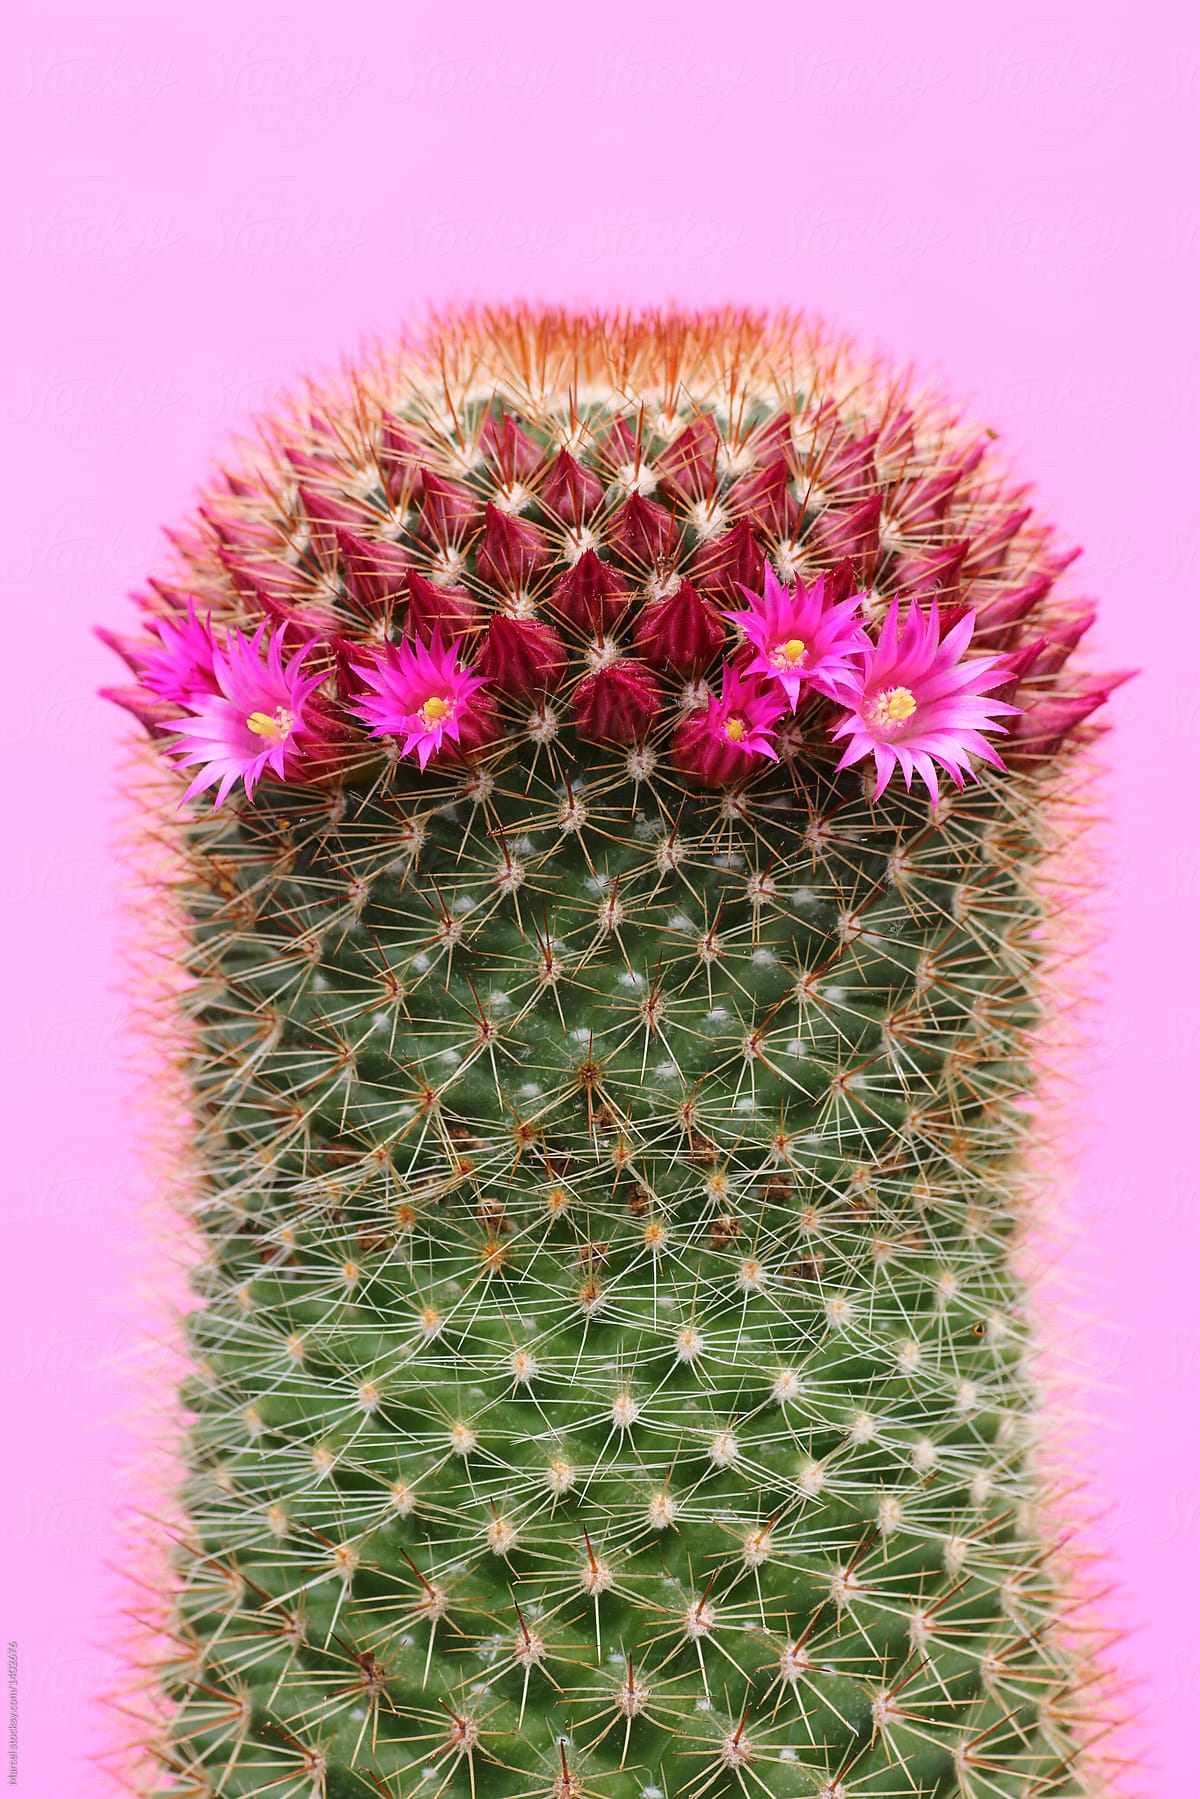 Pink Flowers On Tall Green Cactus Stocksy United